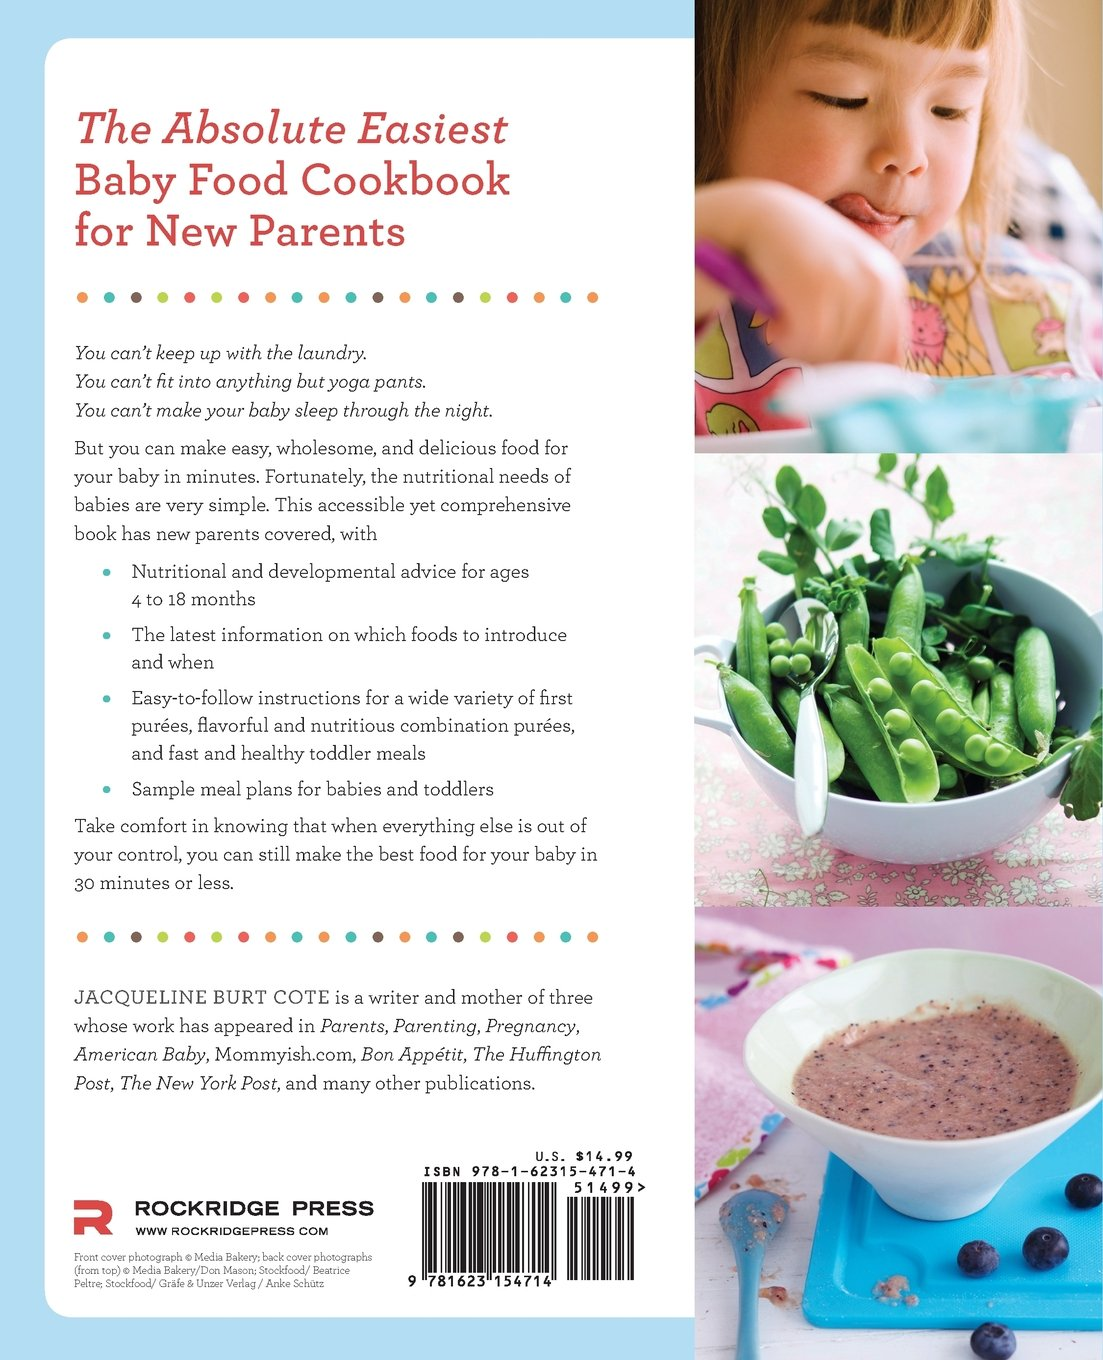 Fast fresh baby food cookbook 120 ridiculously simple and fast fresh baby food cookbook 120 ridiculously simple and naturally wholesome baby food recipes jacqueline burt cote 9781623154714 amazon books forumfinder